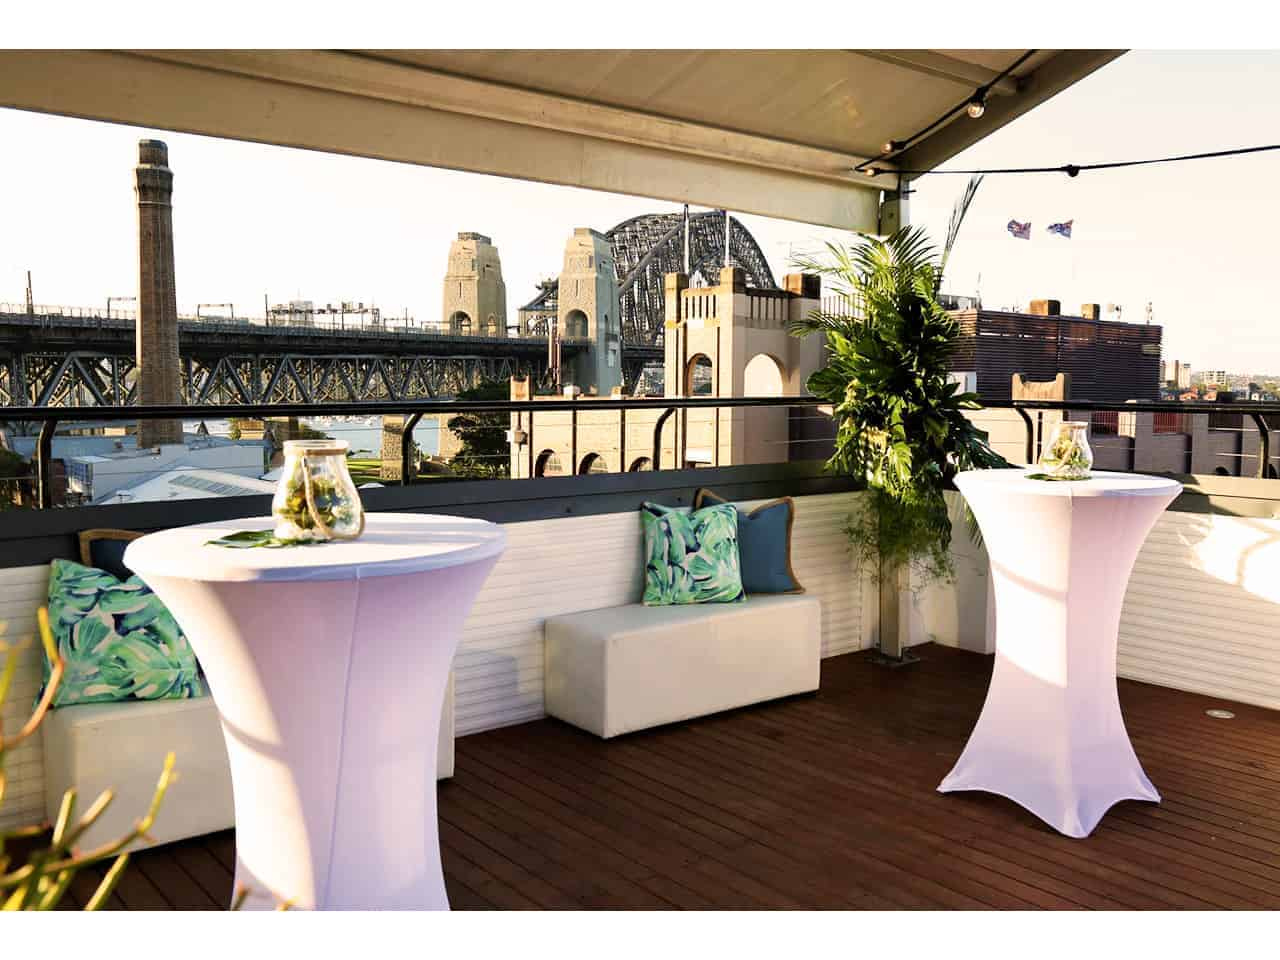 Cocktail style event